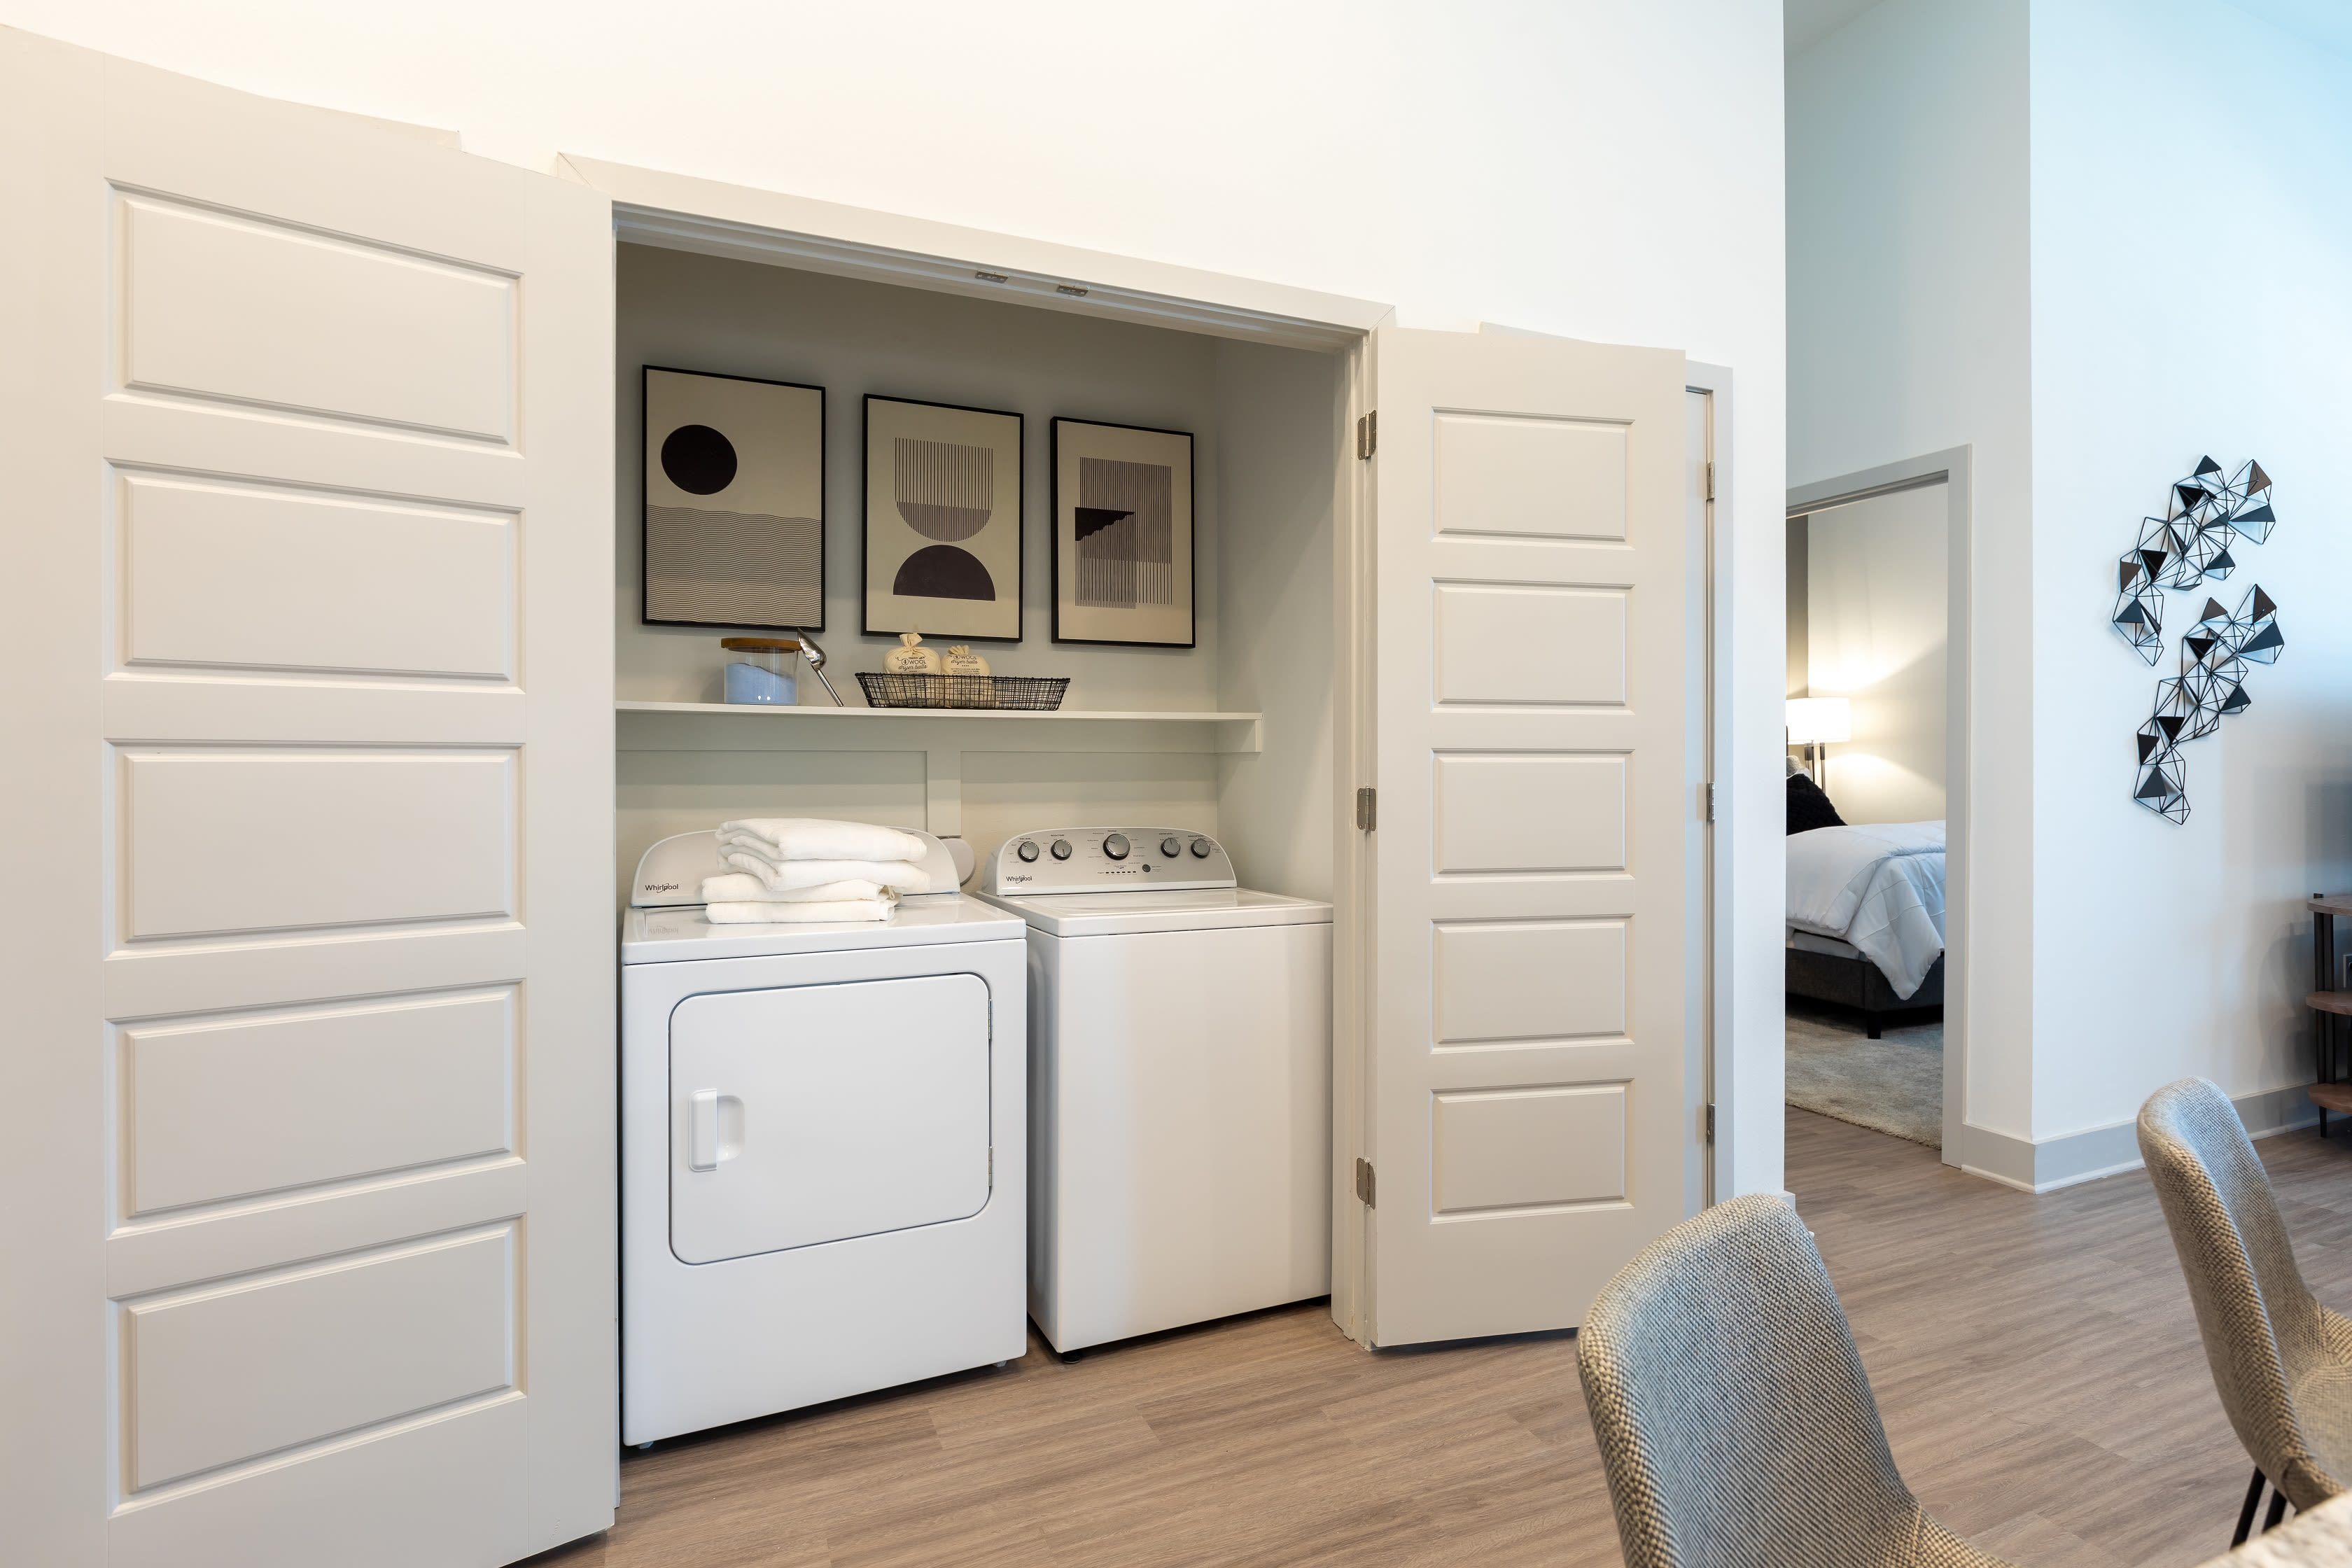 In unit washer and dryer with storage at The ReVe in Garland, Texas